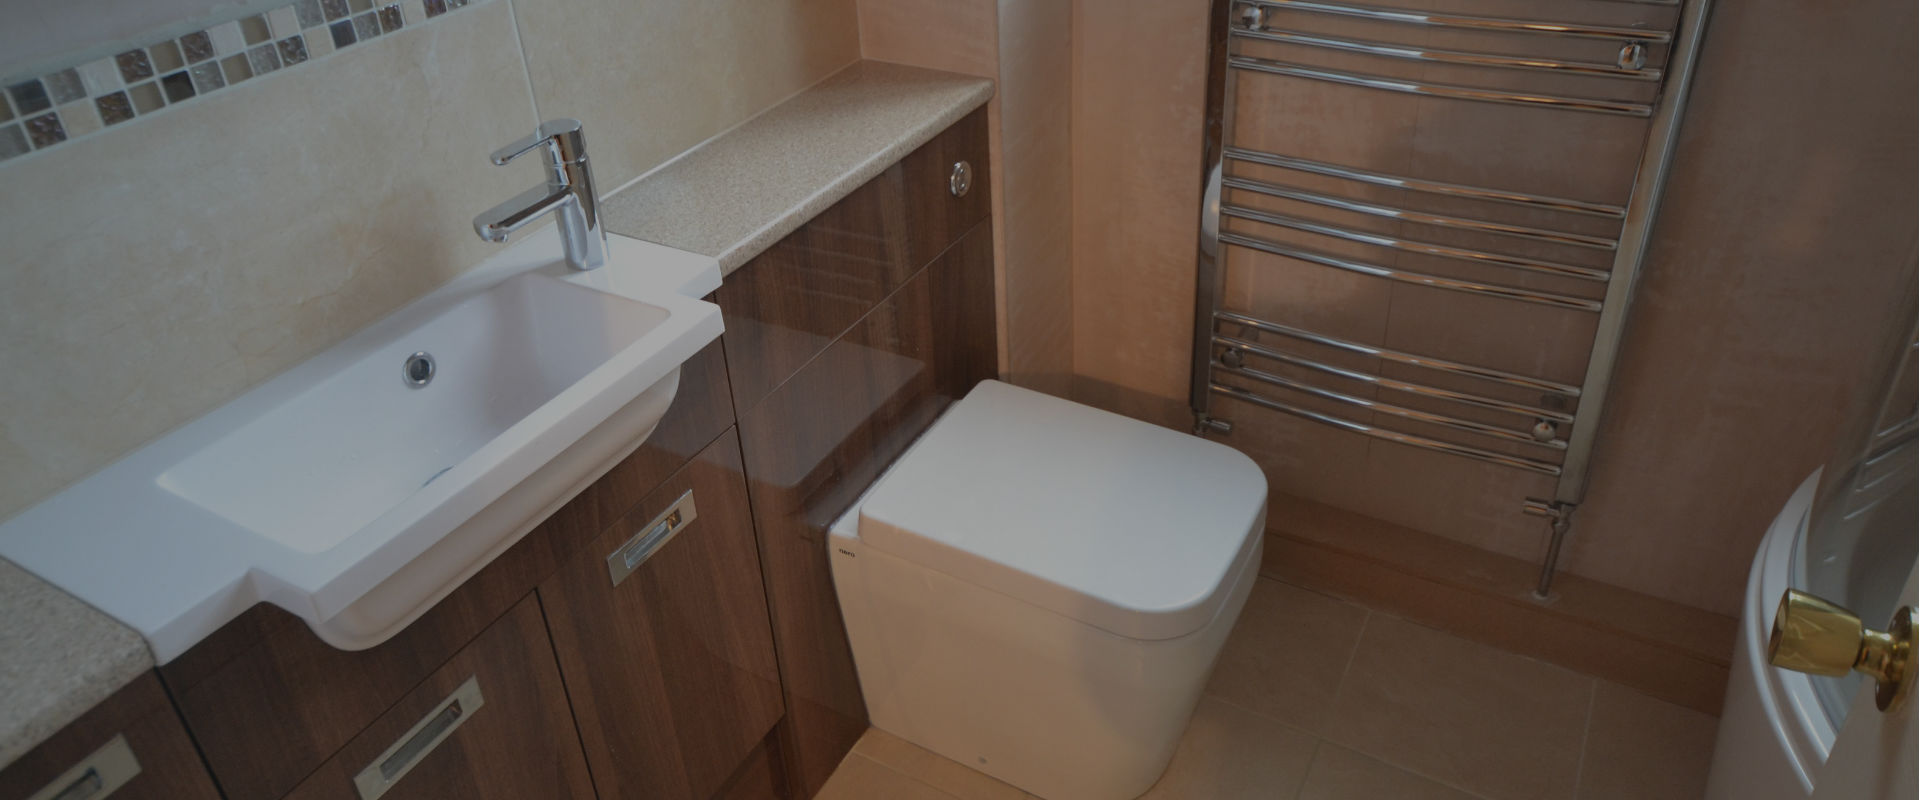 Bathroom fitters in East Lancashire